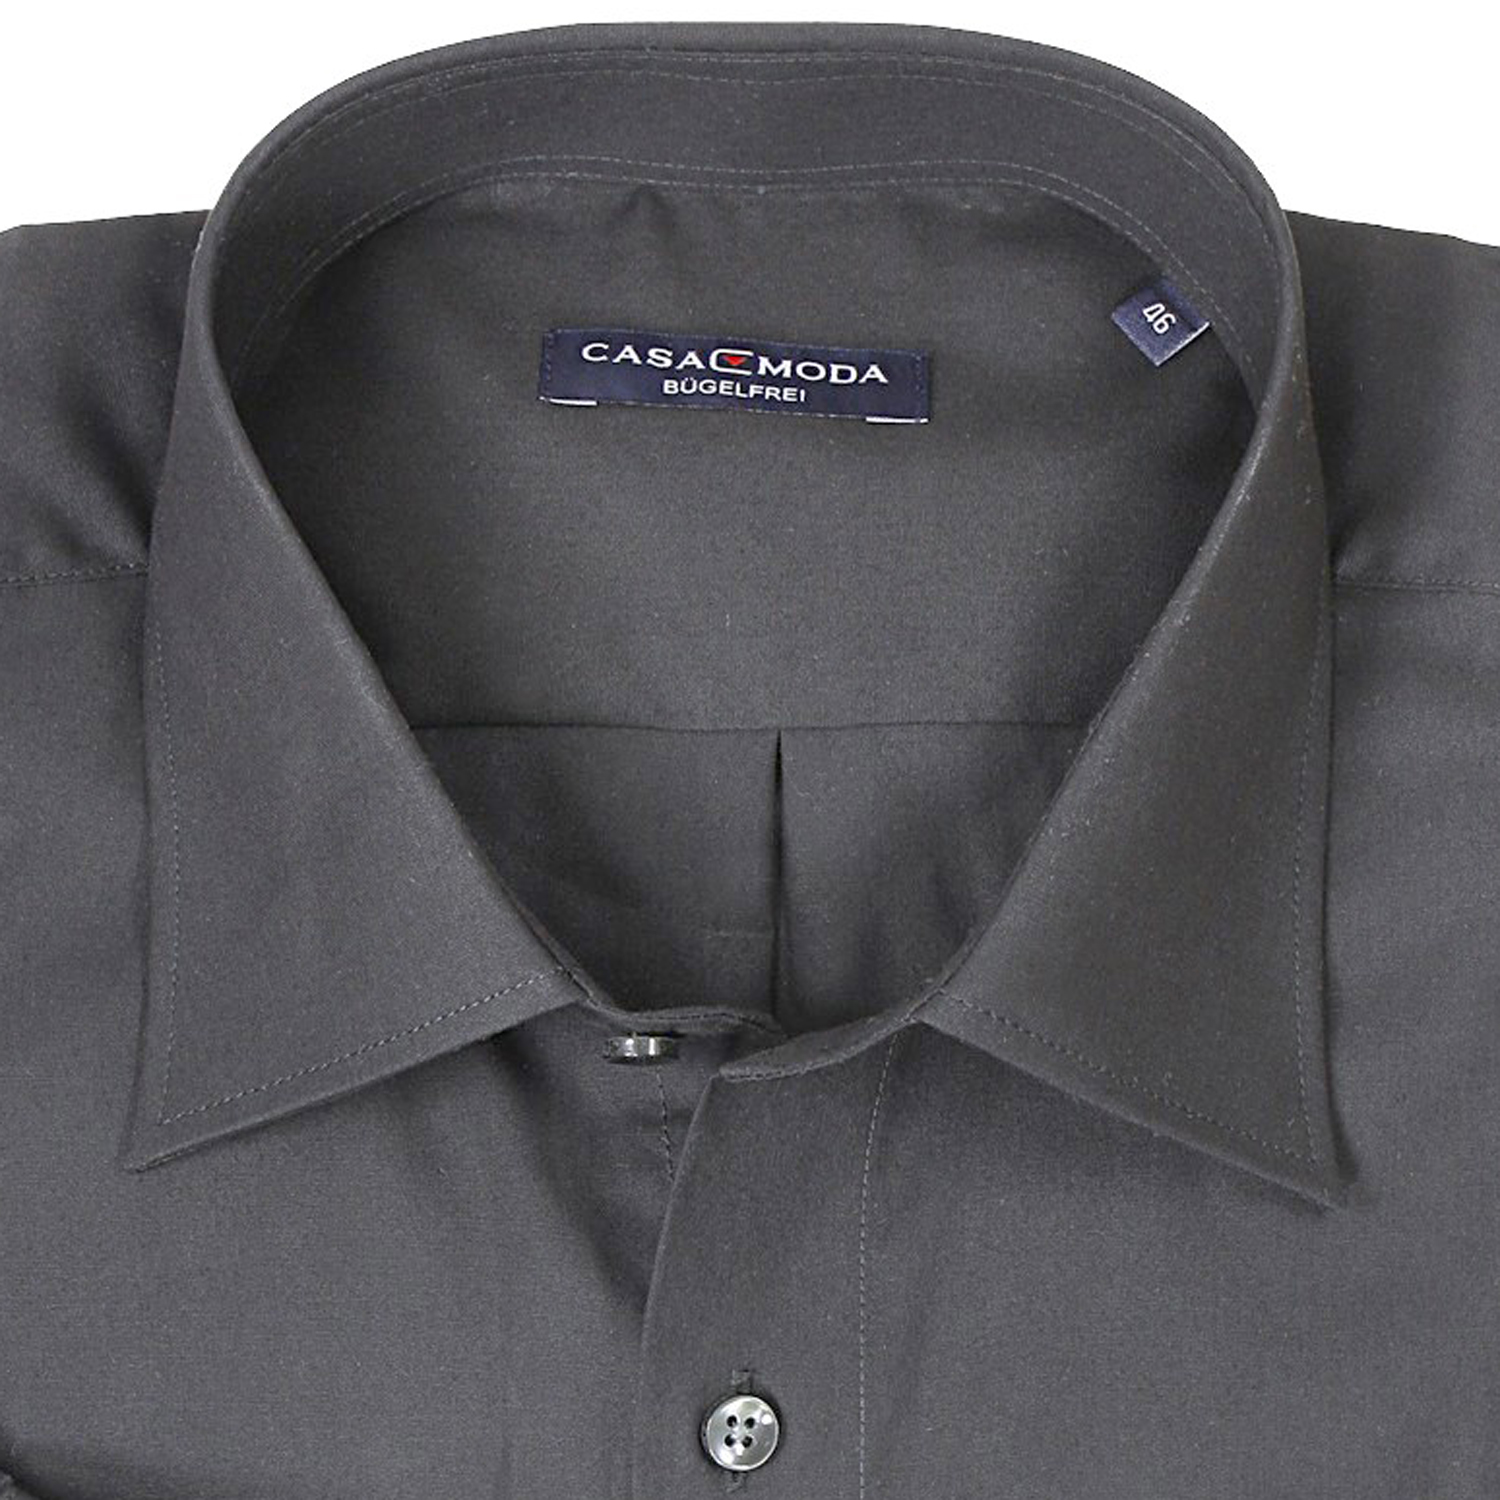 Detail Image to Gray shirt by Casamoda in plus size up to 7XL